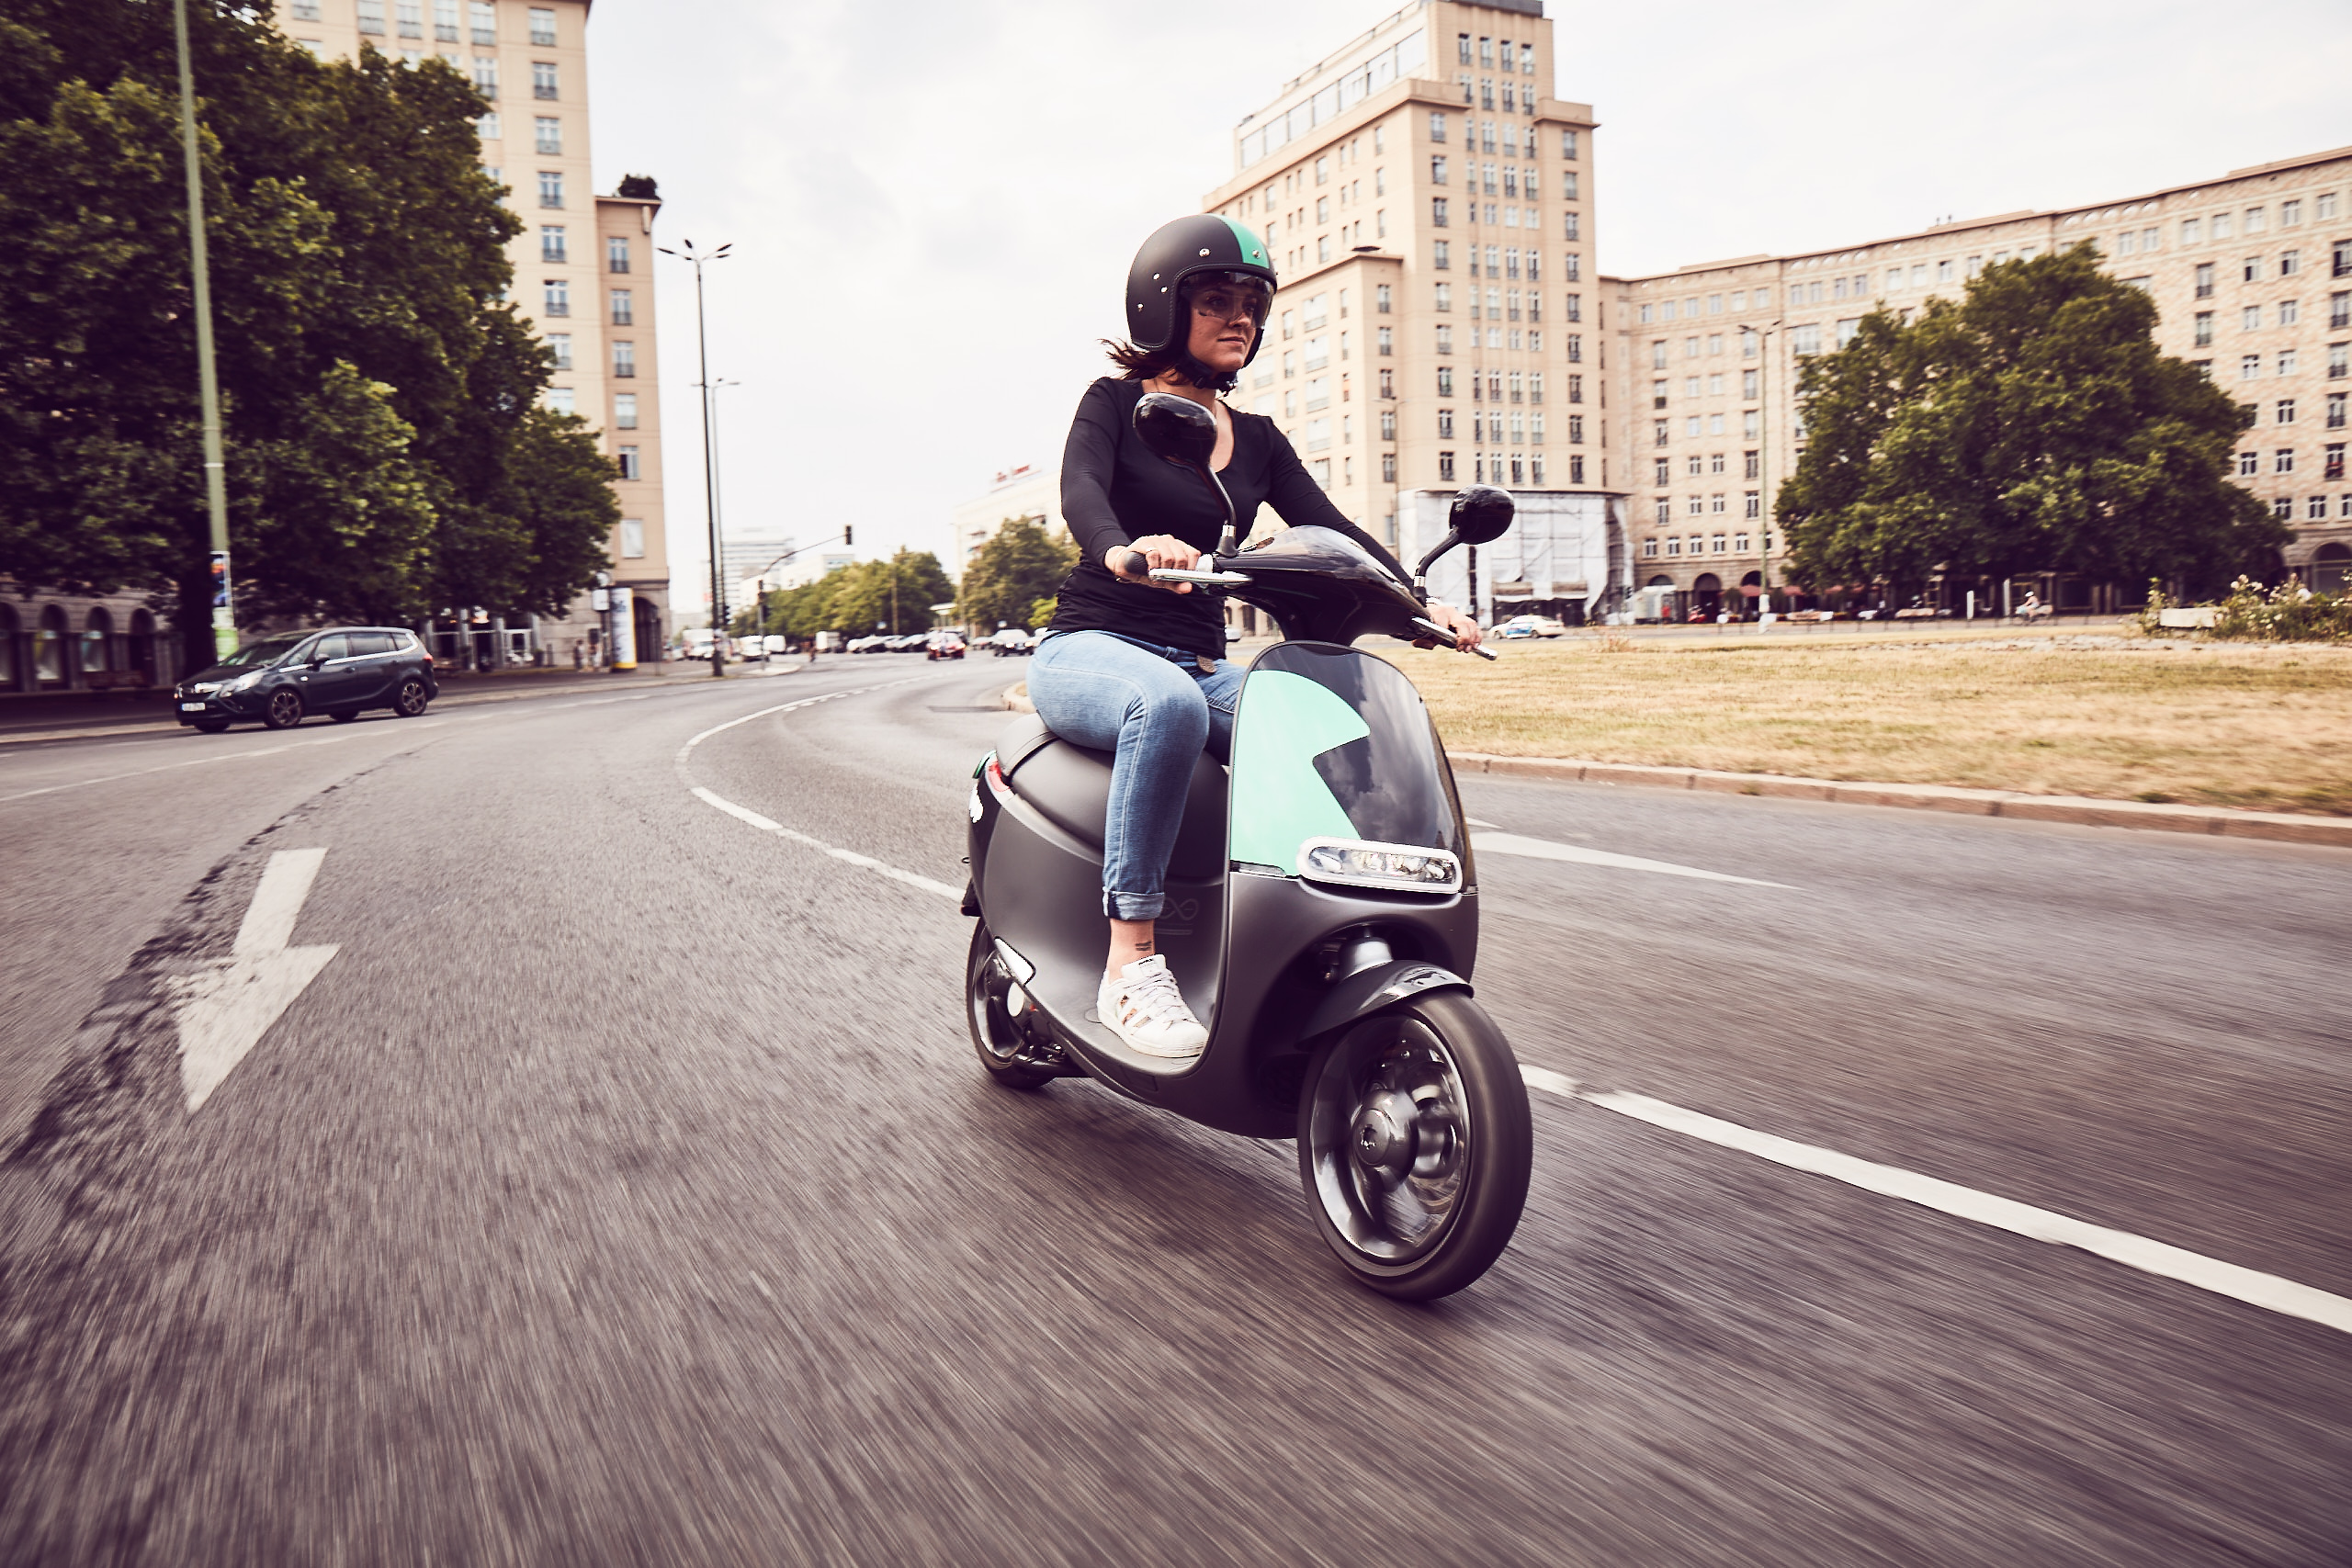 Two-wheeler mobility in metropolises: Quickly, flexibly, and variedly